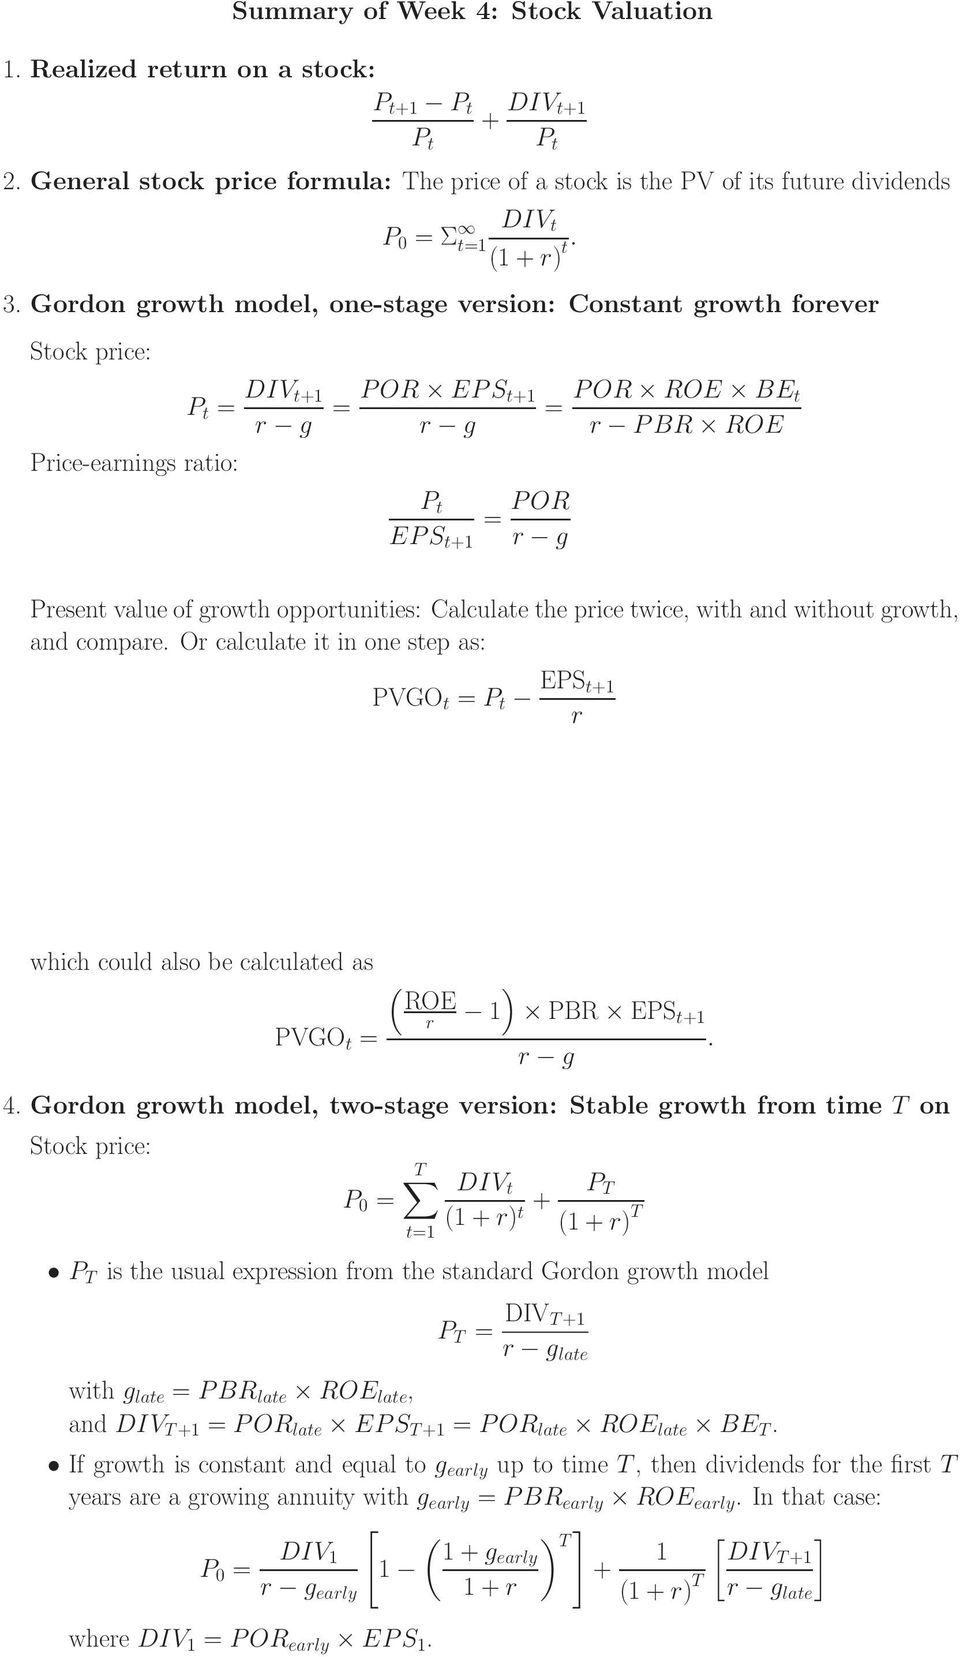 Gordon growth model, one-stage version: Constant growth forever Stock price: P t = DIV t+1 r g = POR EPS t+1 = POR ROE BE t r g r PBR ROE Price-earnings ratio: P t = POR EPS t+1 r g Present value of